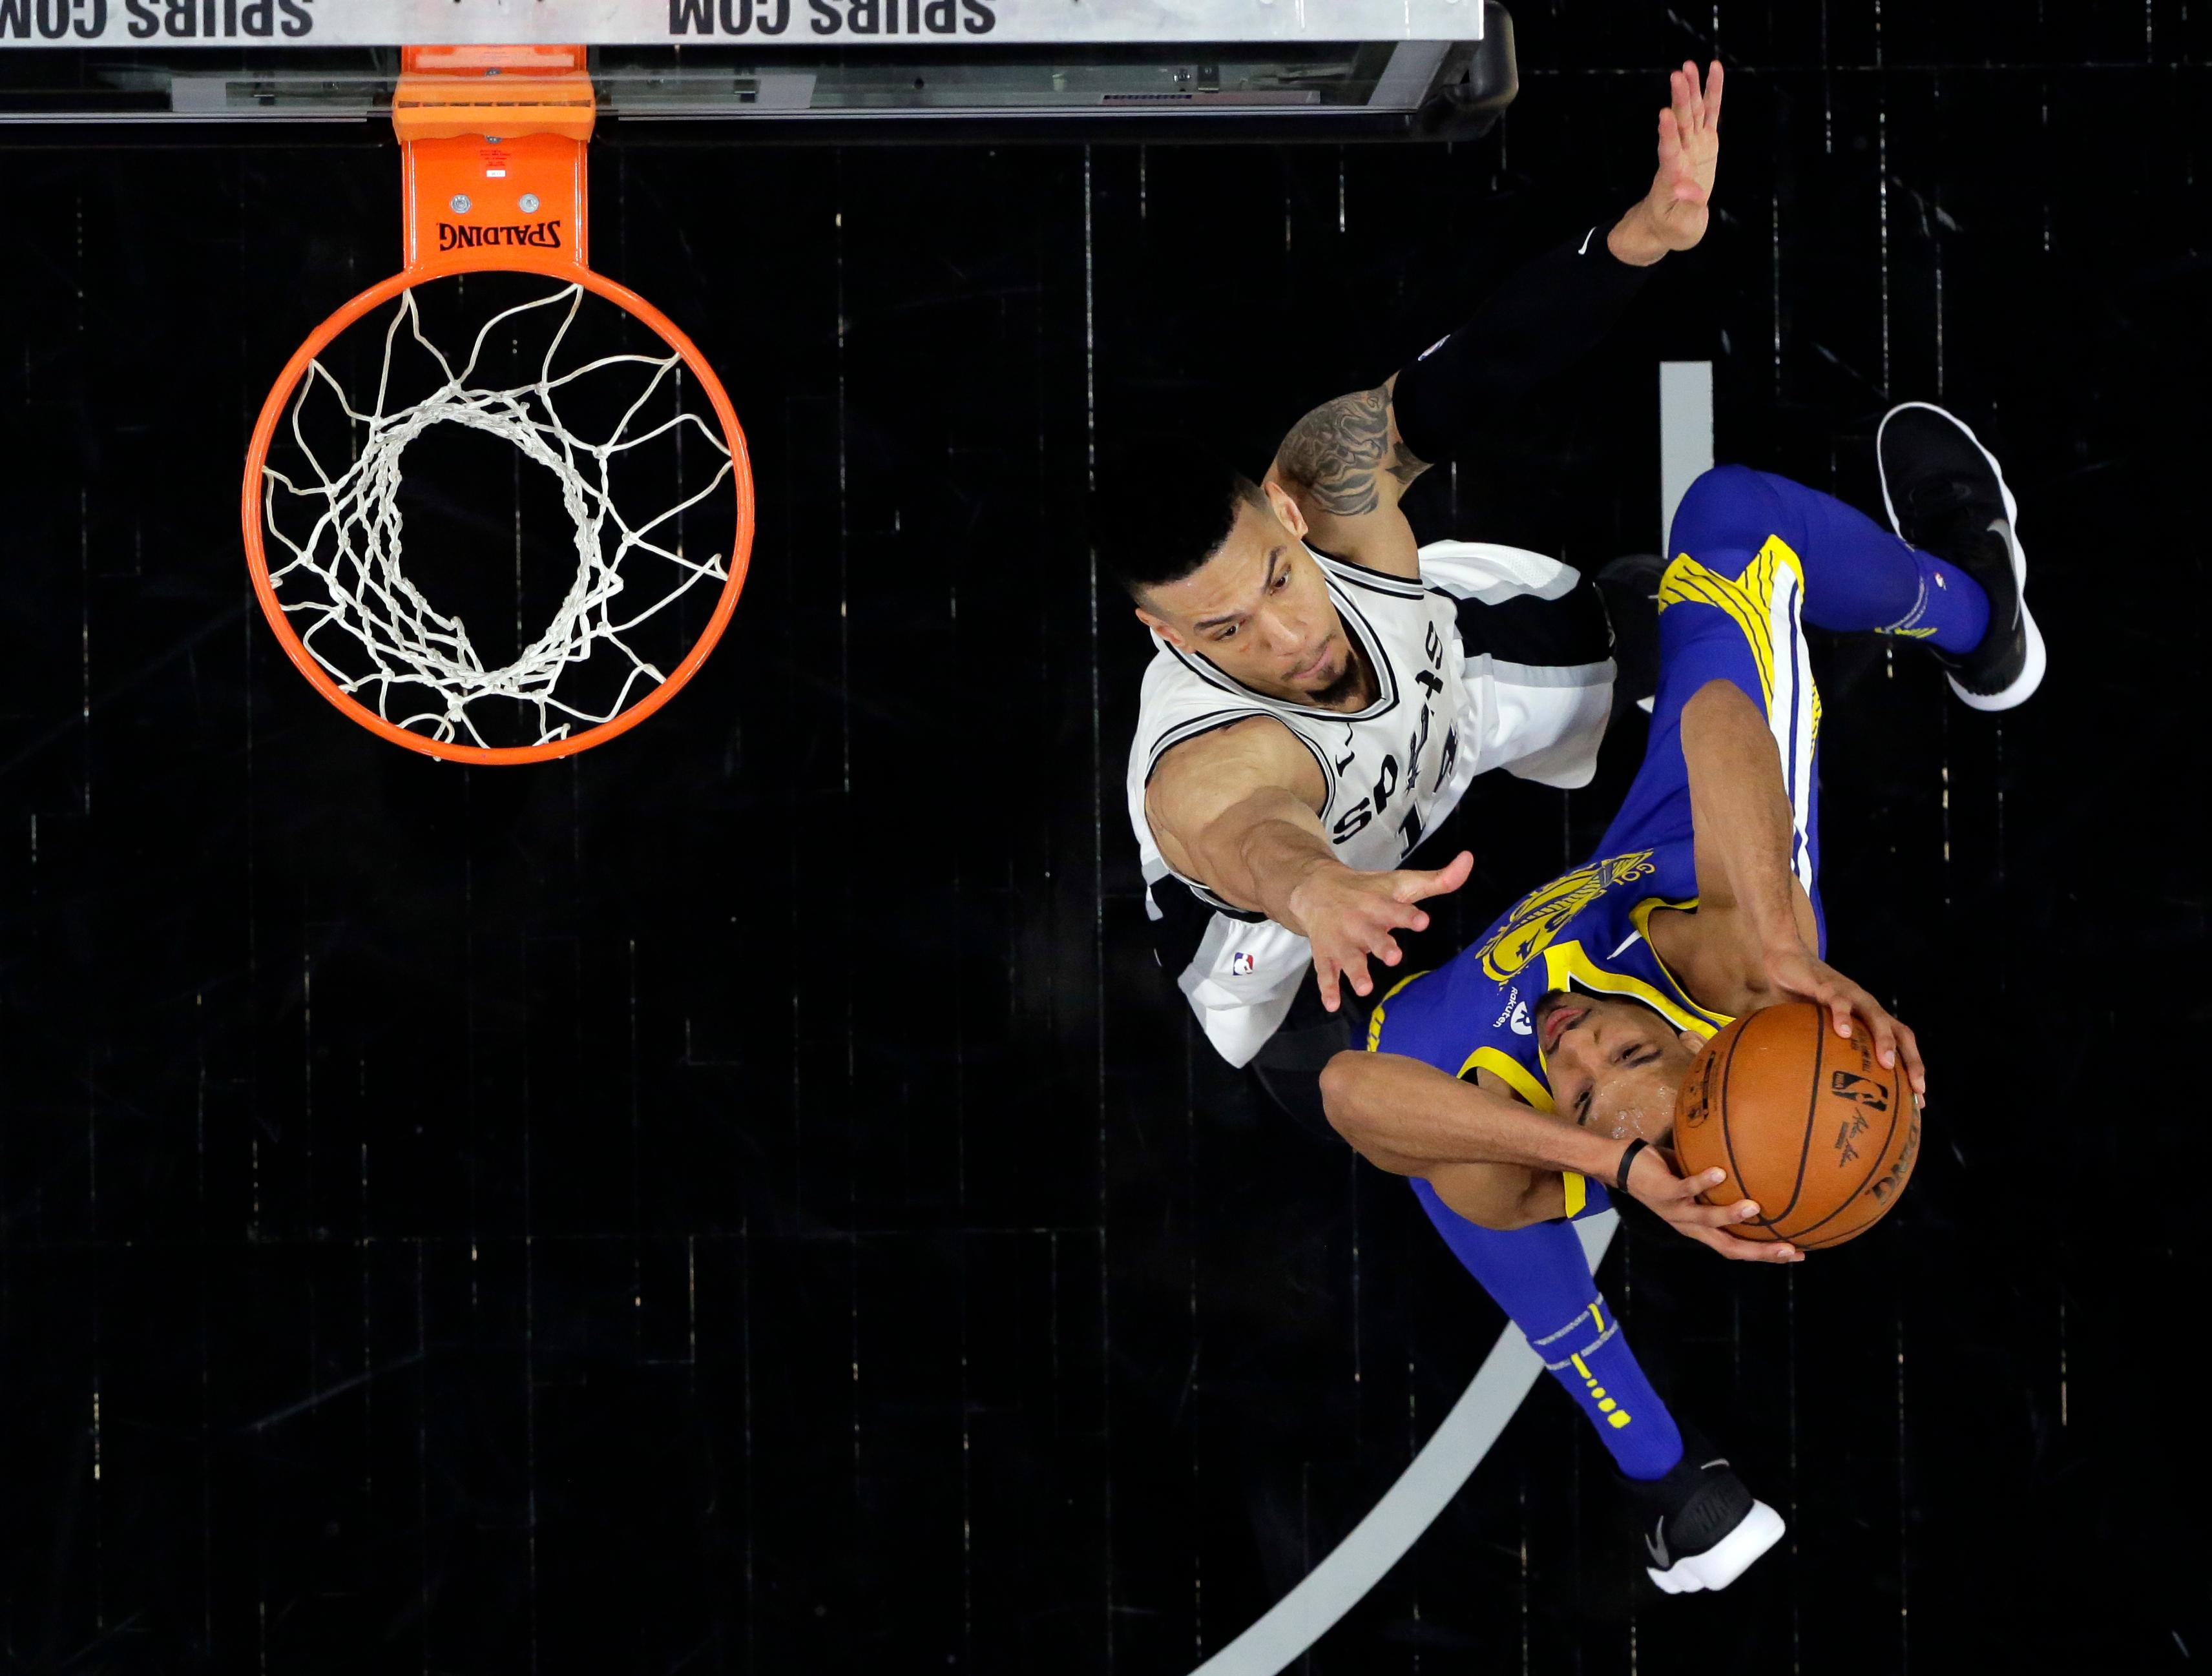 San Antonio Spurs' Danny Green (14) defends as Golden State Warriors guard Shaun Livingston (34) shoots during the second half of Game 3 of a first-round NBA basketball playoff series in San Antonio, Thursday, April 19, 2018. (AP Photo/Eric Gay)